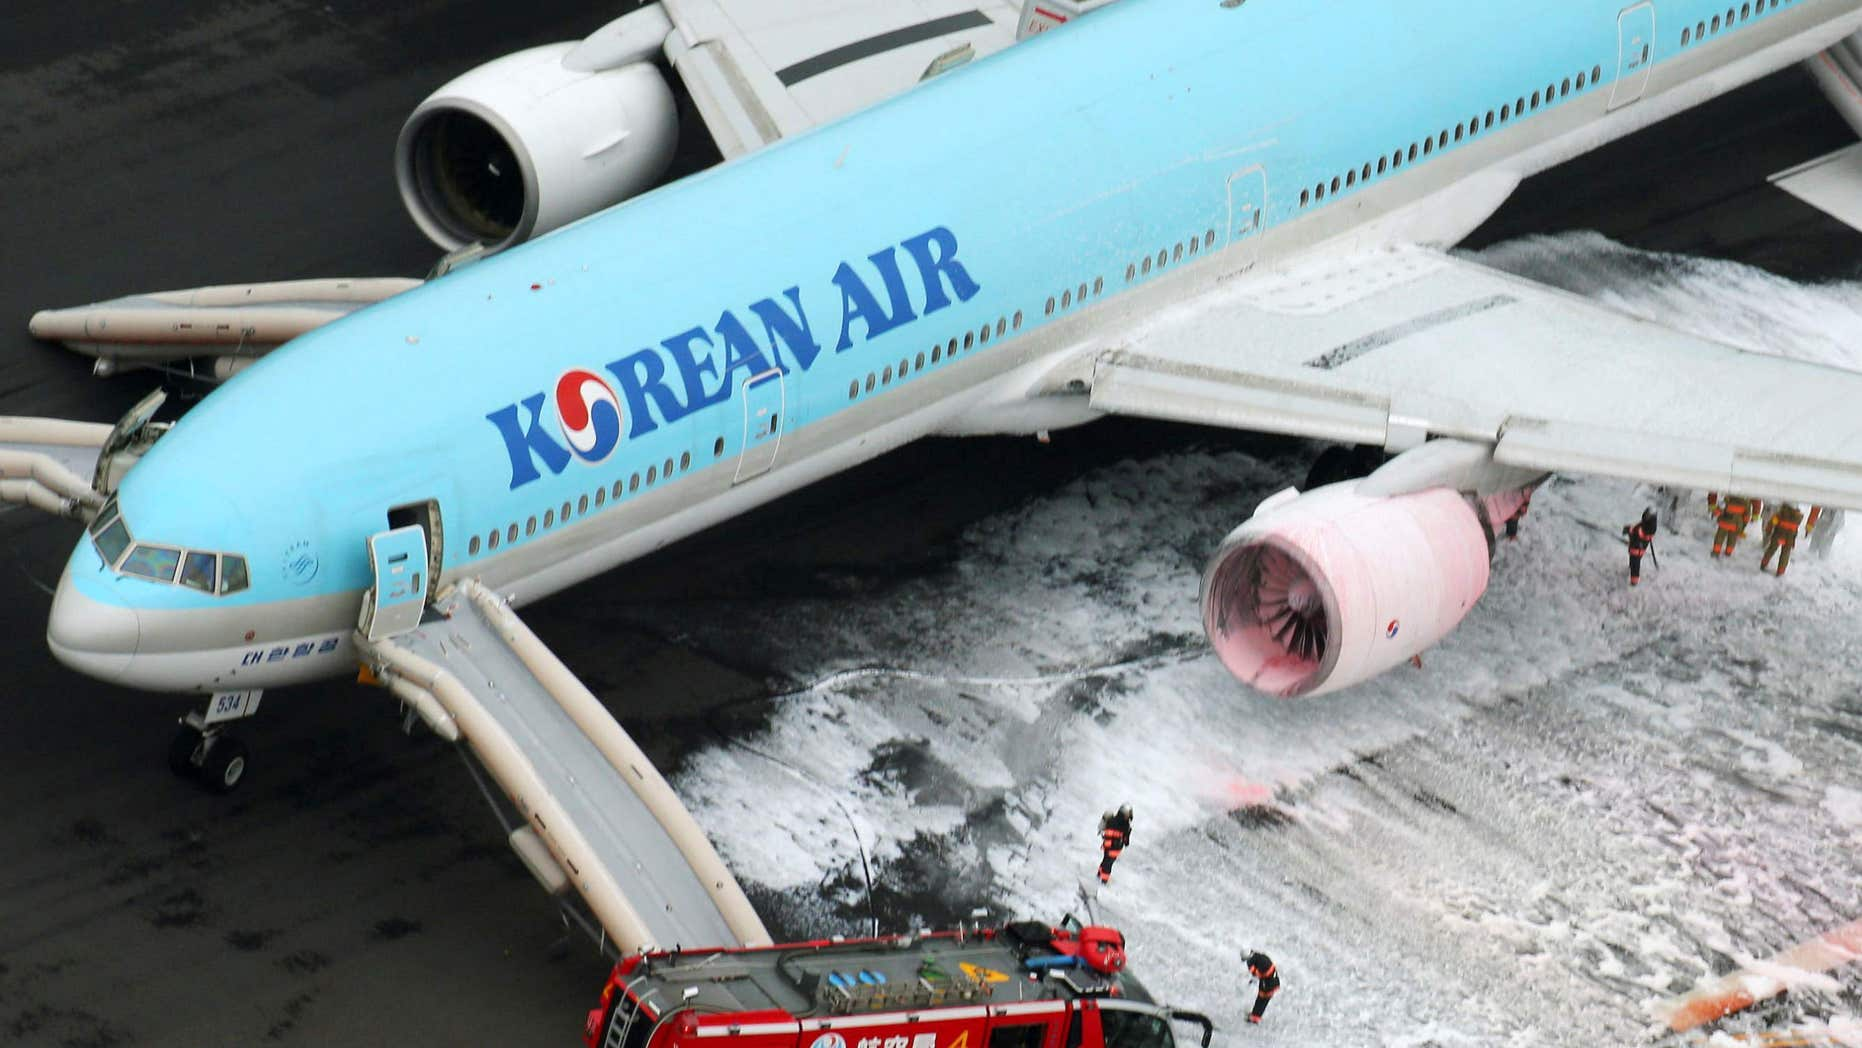 May 27, 2016: An aerial picture shows fire fighters spraying foam at the engine of a Korean Air Lines plane after smoke rose from it at Haneda airport in Tokyo, Japan.